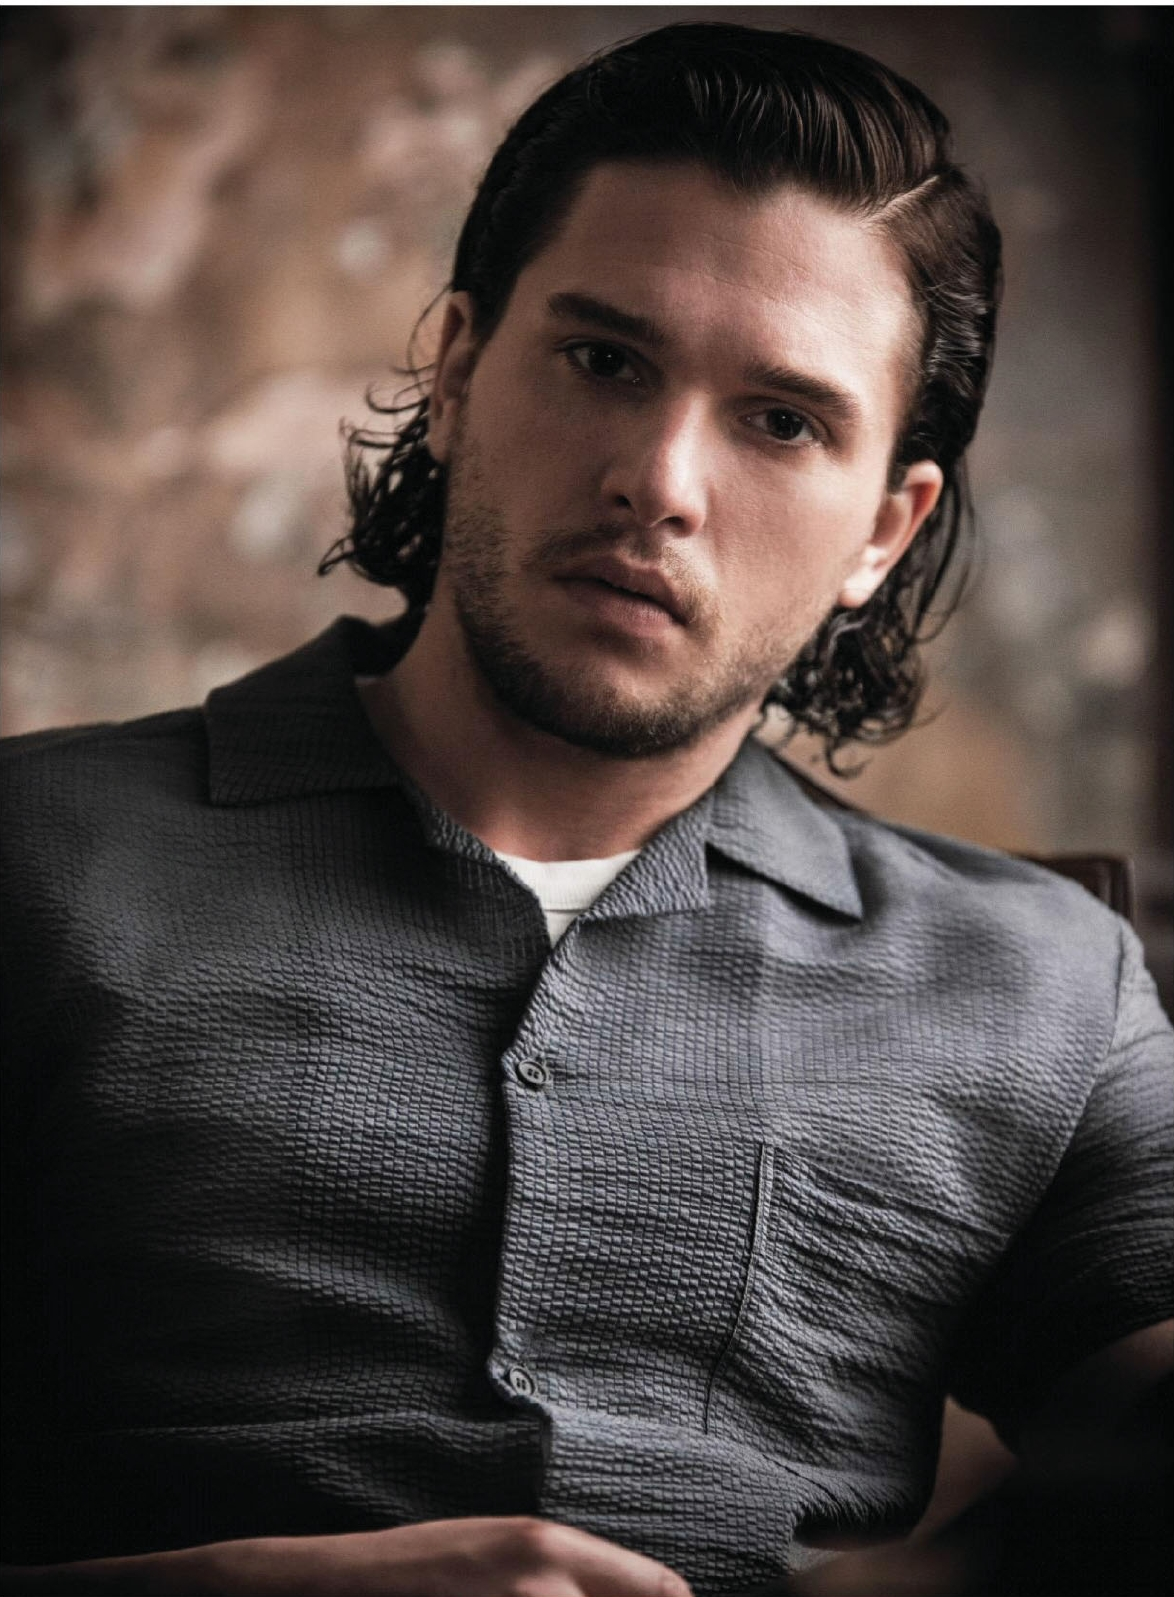 1000+ images about Kit Harington ♥ on Pinterest | Kit harington